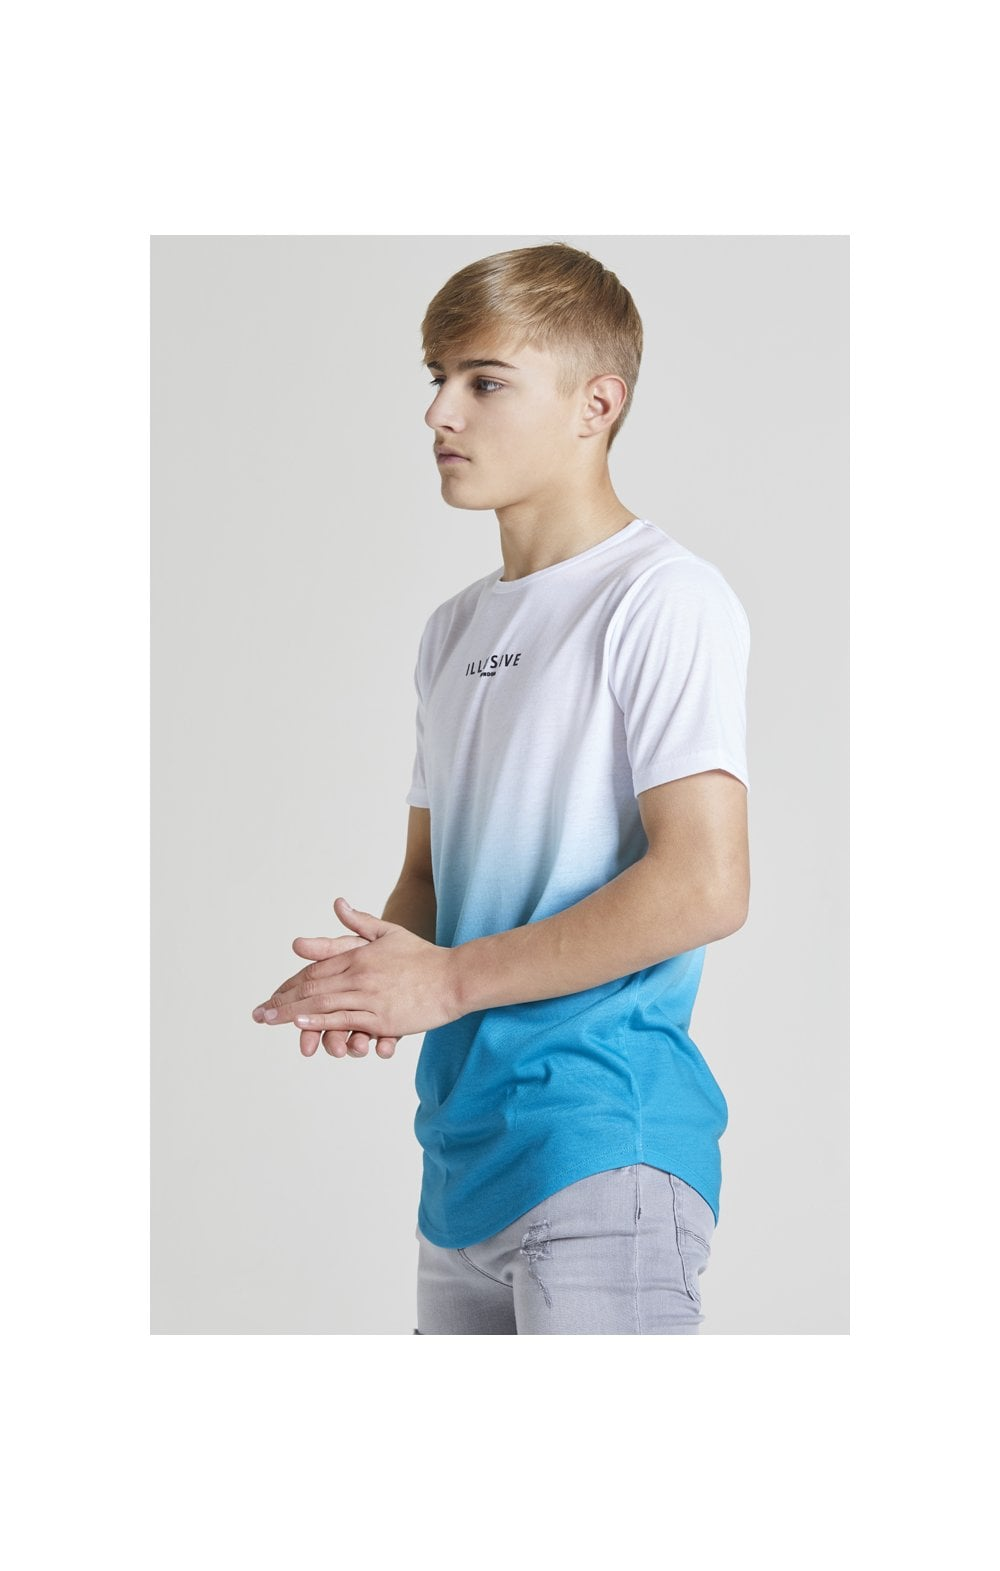 Illusive London Core Fade Tee – White & Teal Green (2)